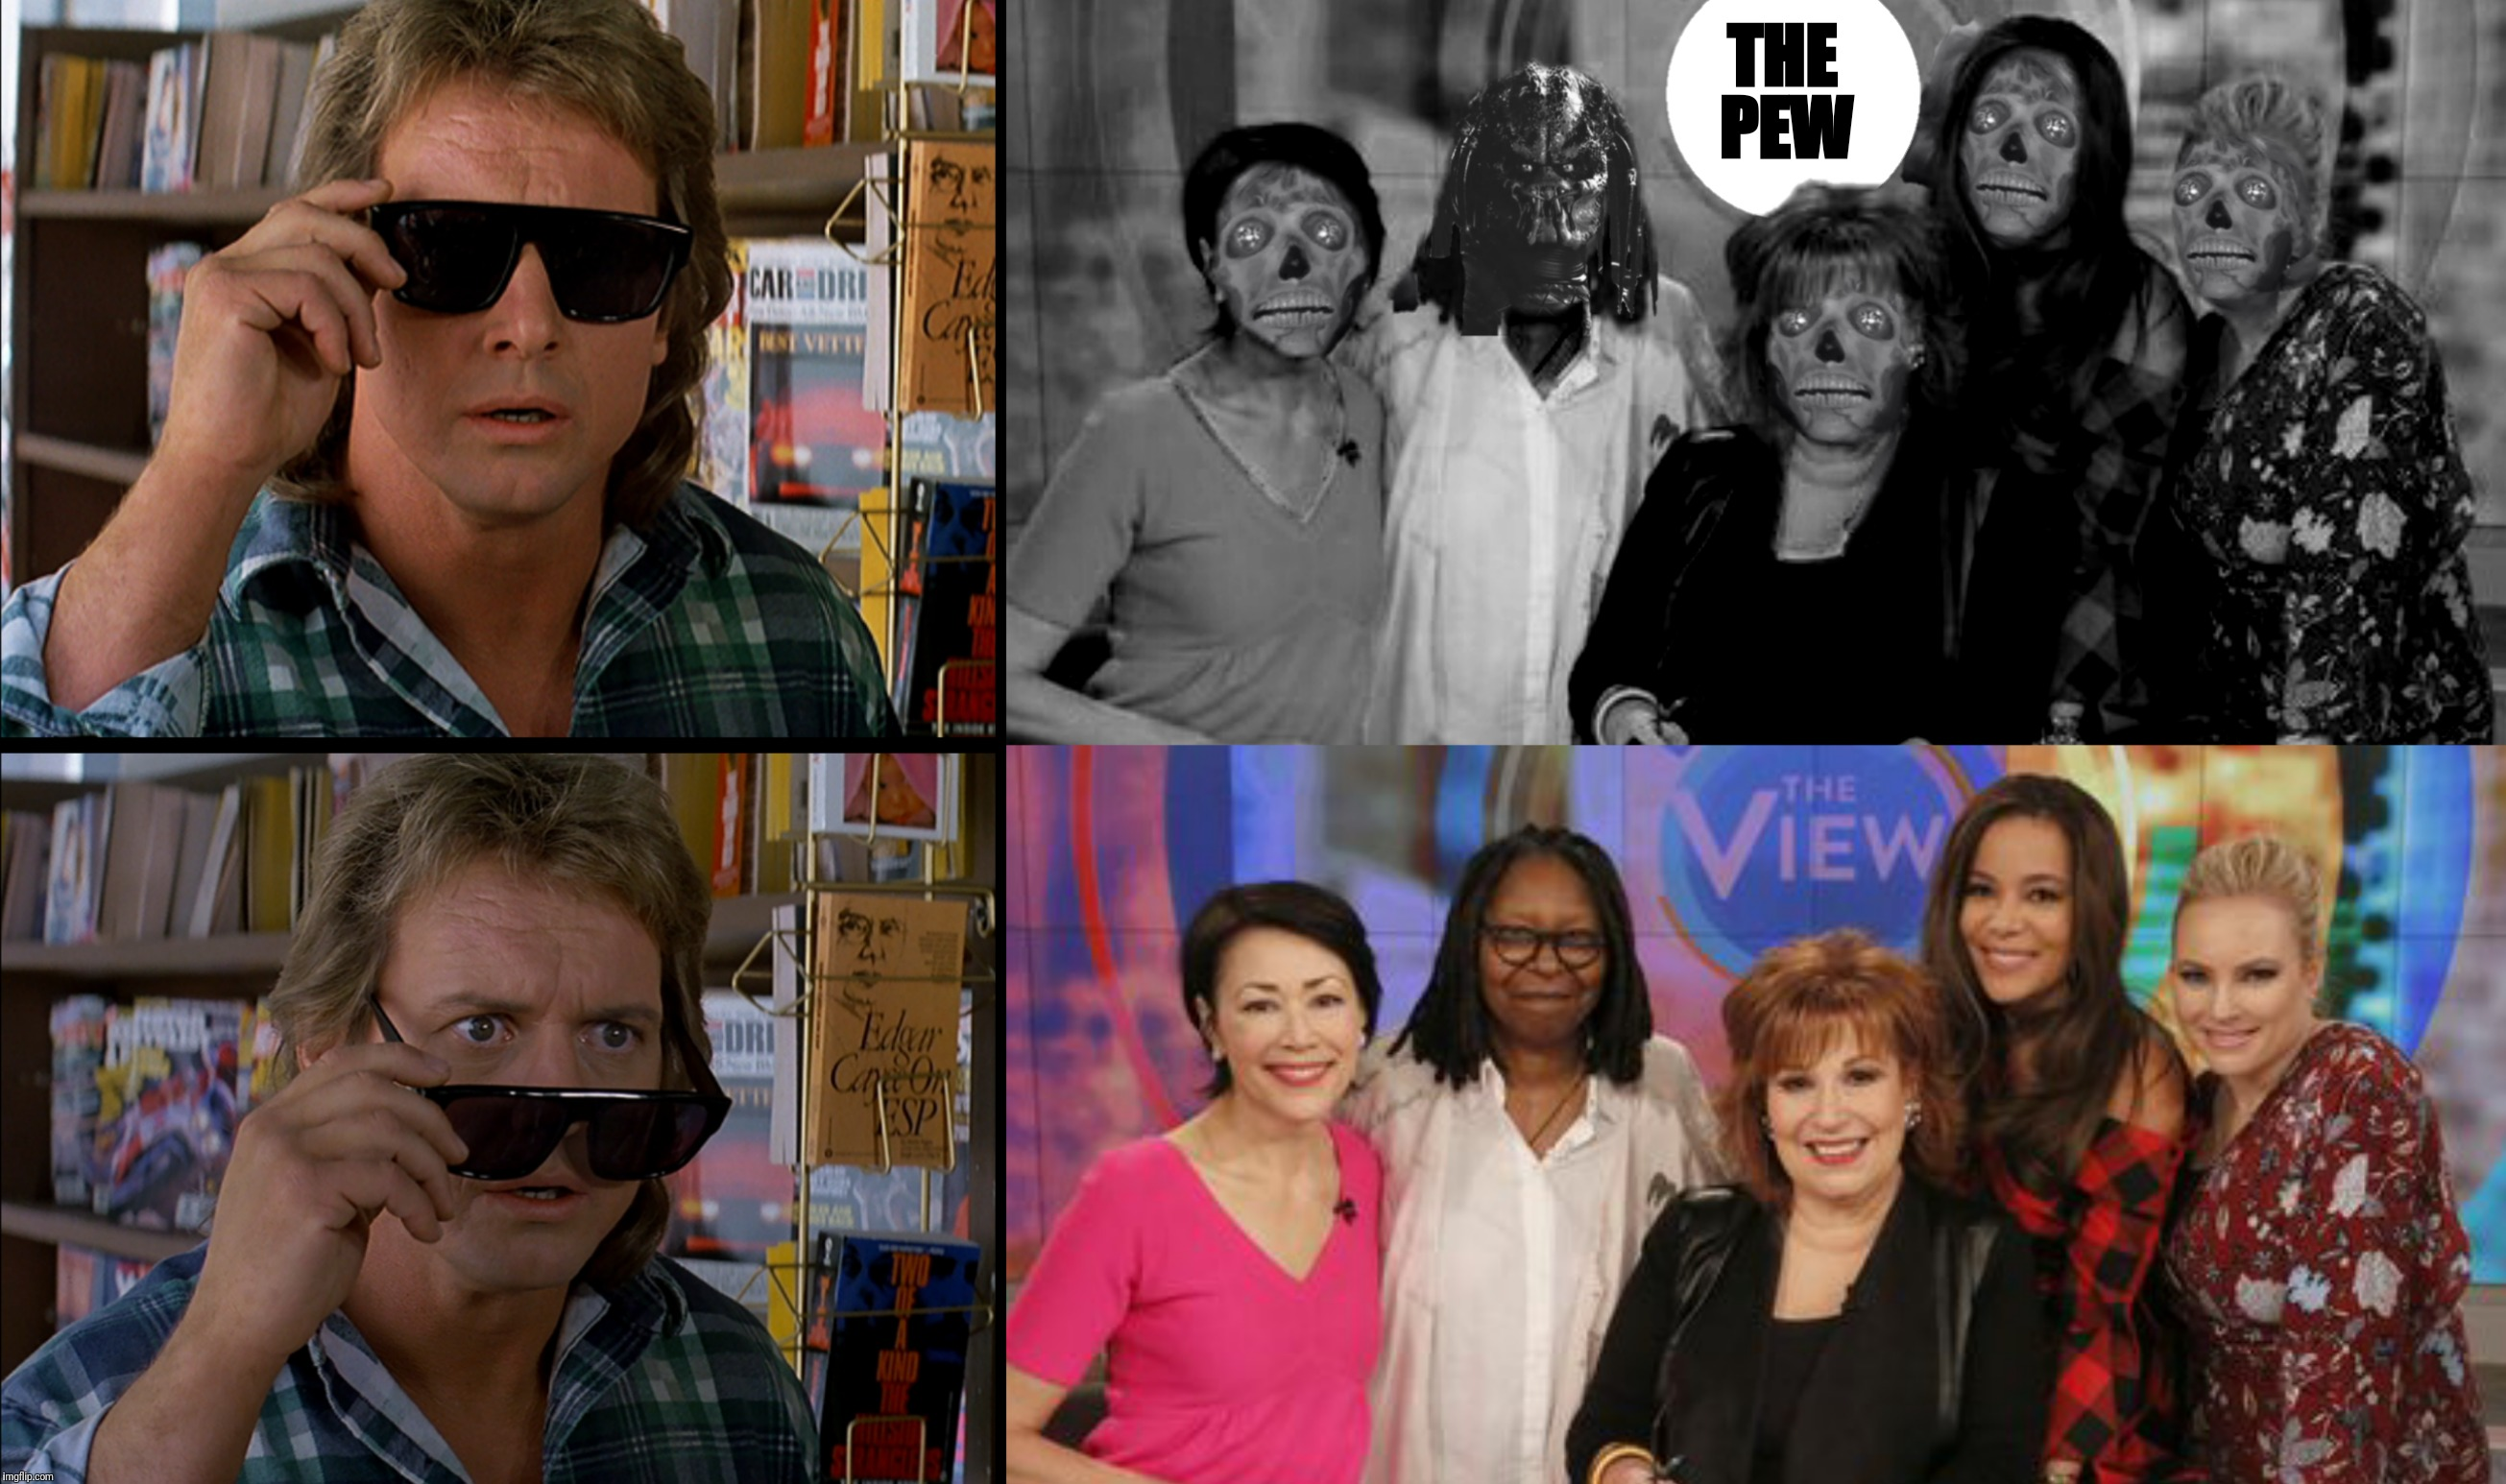 Bad Photoshop Sunday presents:  They Cackle! | THE PEW | image tagged in bad photoshop sunday,they live,the view,sunglasses | made w/ Imgflip meme maker